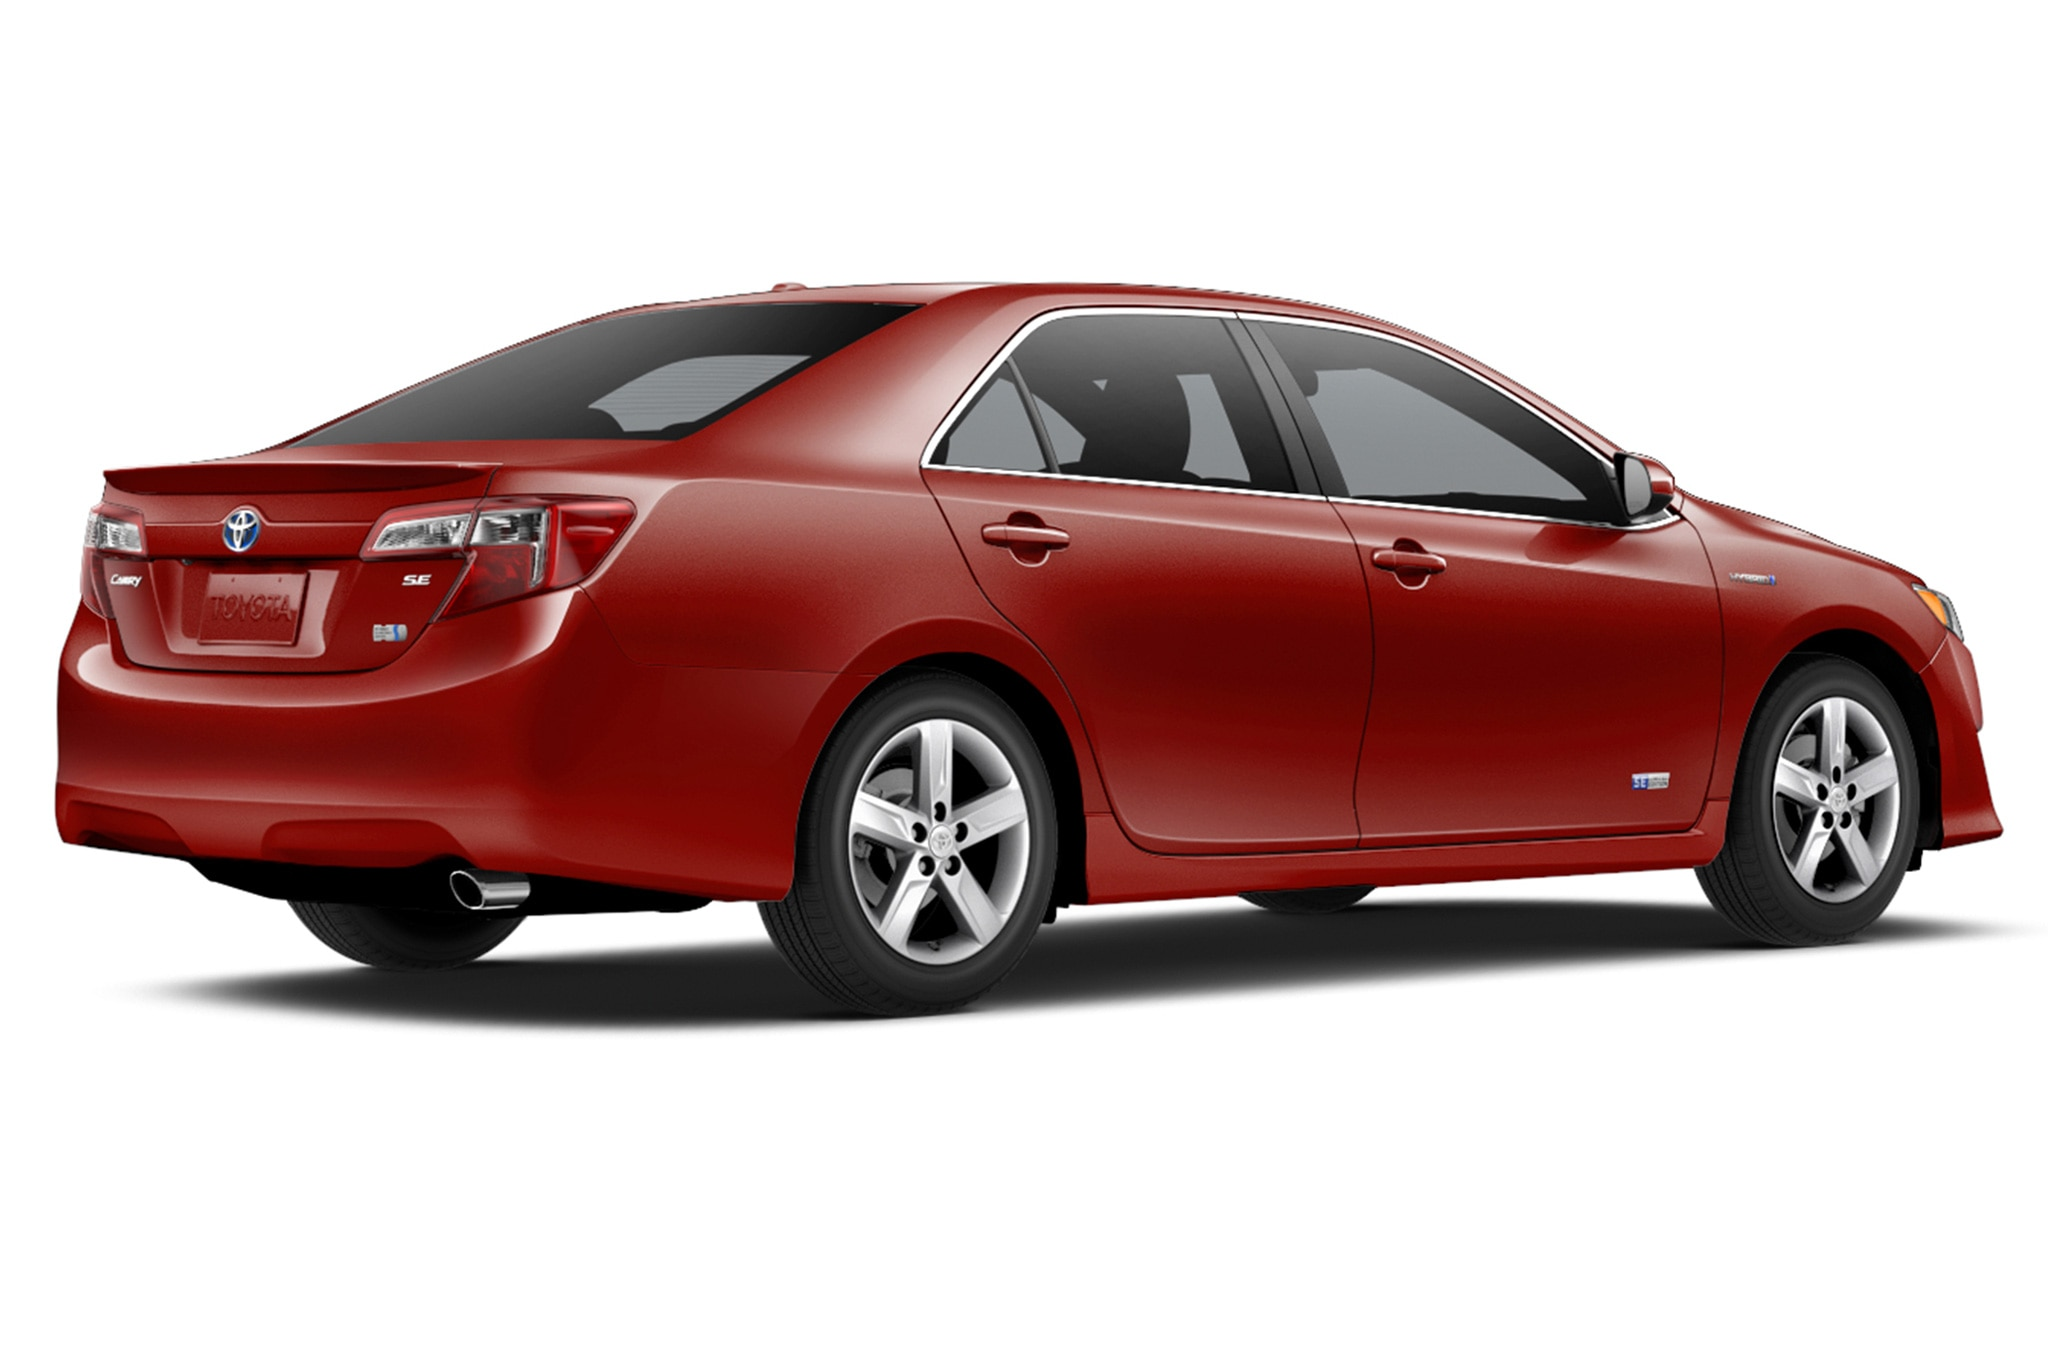 Toyota Camry Hybrid Se Limited Edition Rear View